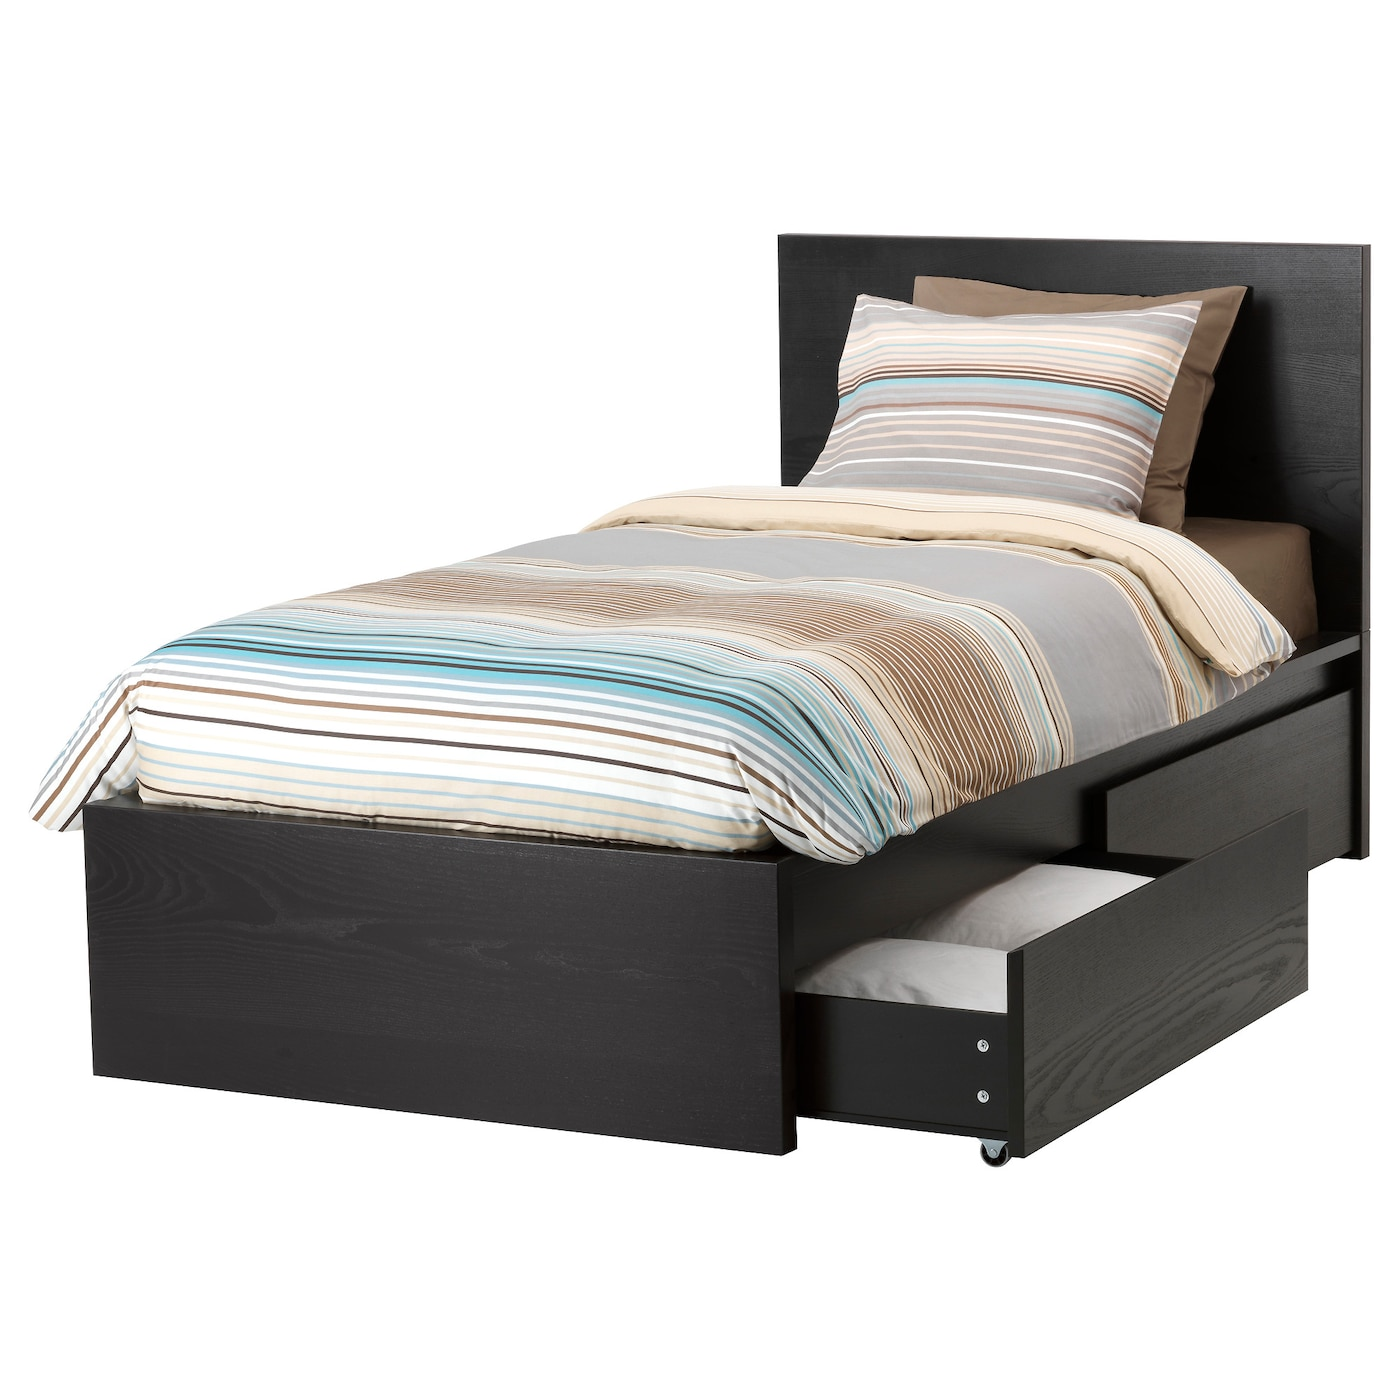 frame itself assembly ikea bed solid beds malm inspirations